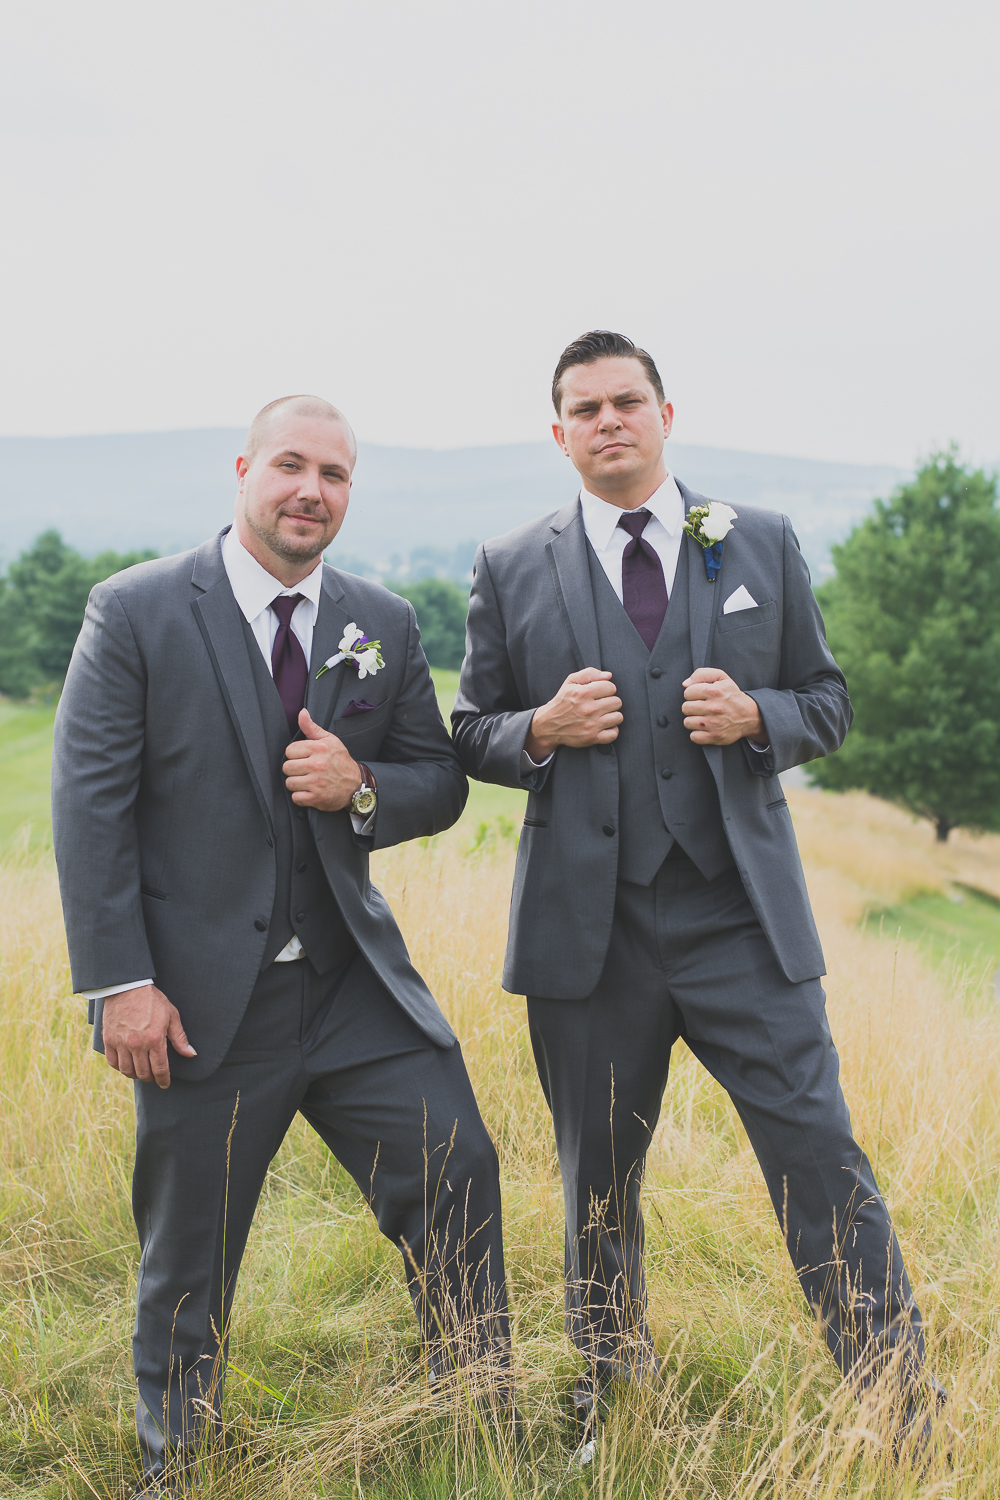 Catoctin Hall at Musket Ridge Wedding best man groom Photo